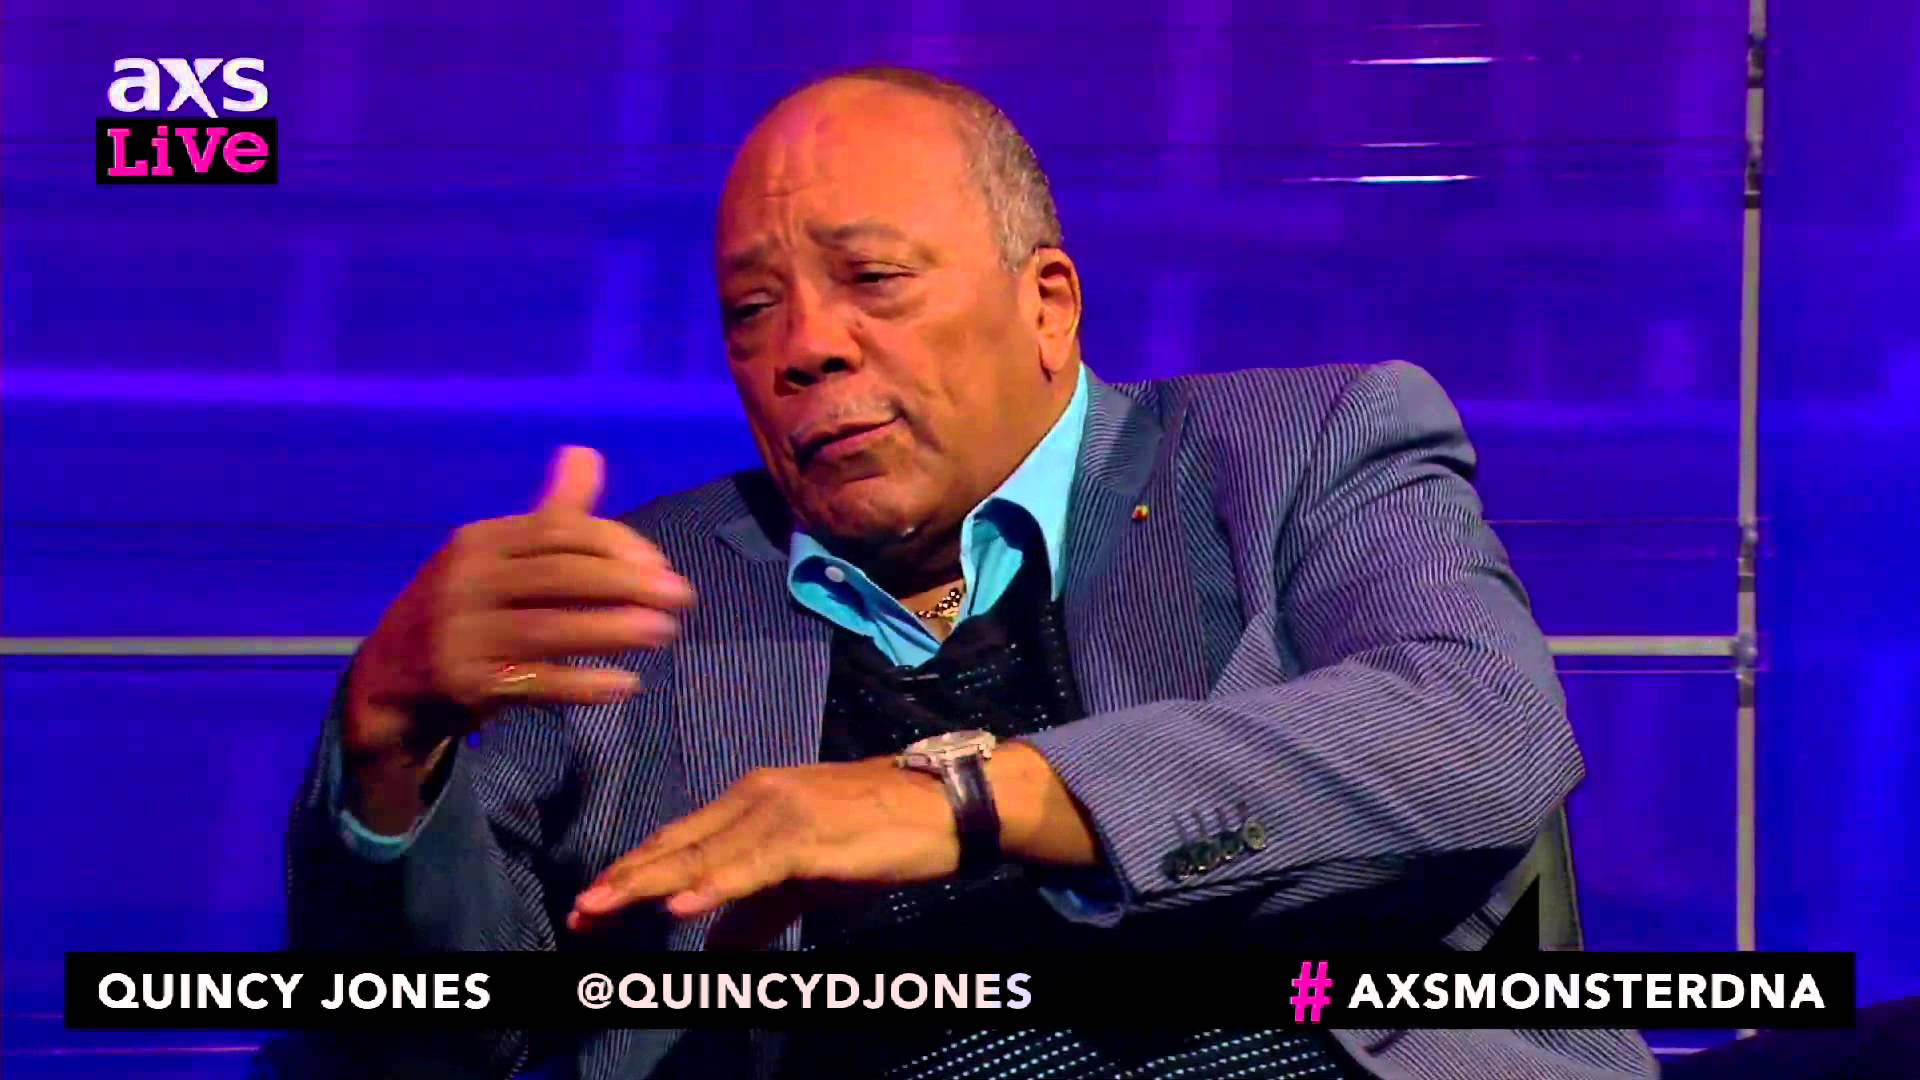 Quincy Jones U.S. tribute concert hosted by Oprah Winfrey; performances by Stevie Wonder, John Legend, Gladys Knight and more